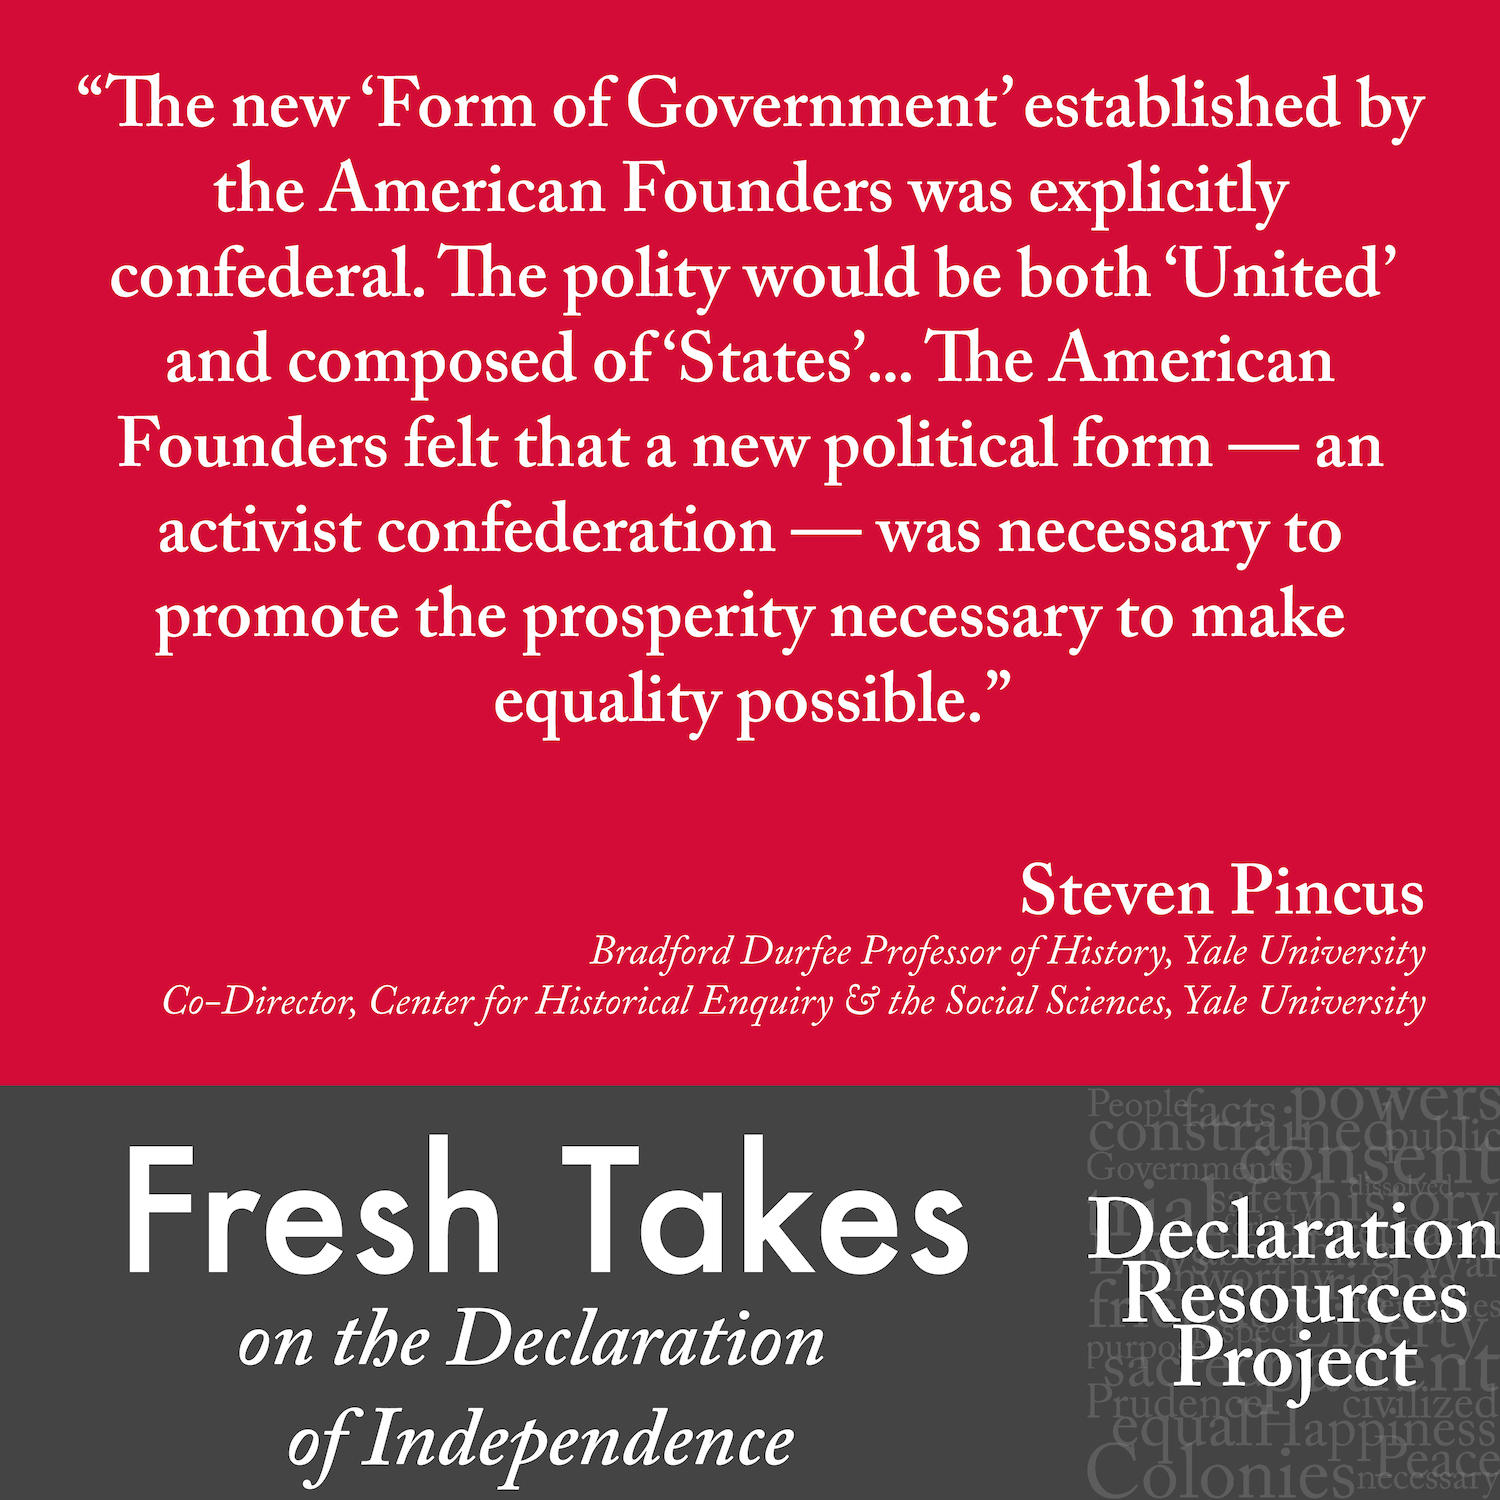 Steven Pincus's Fresh Take on the Declaration of Independence